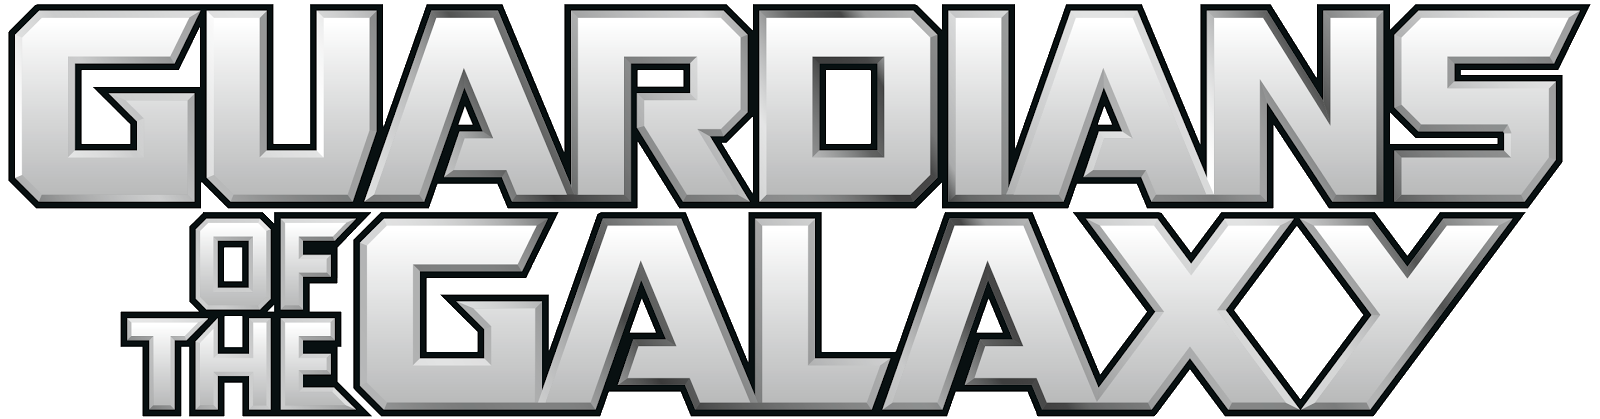 1600x419 Fileguardians Of The Galaxy Logo.png